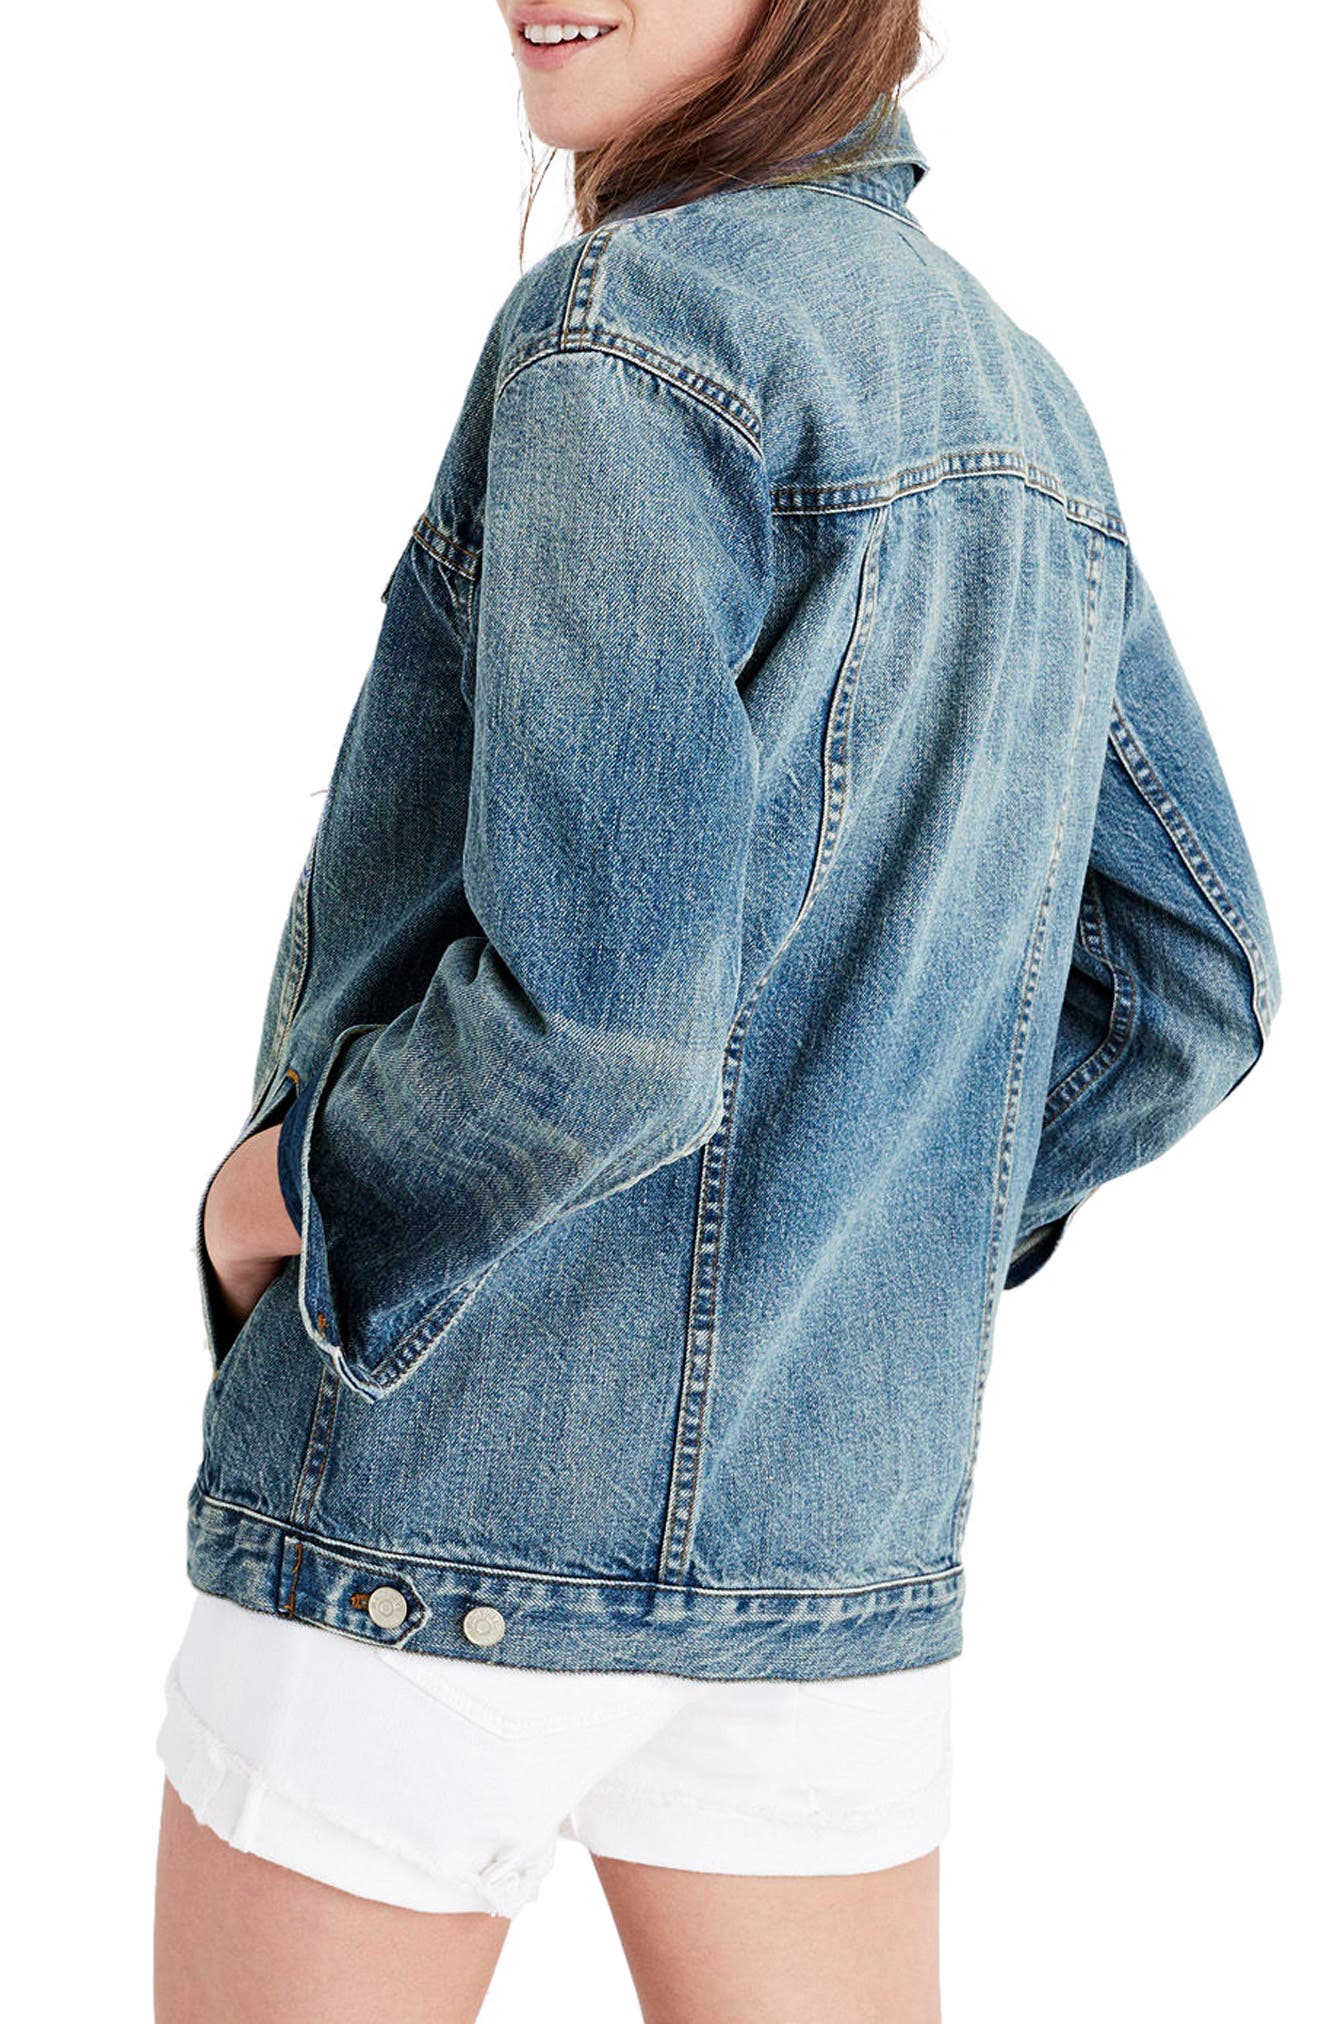 Oversize Denim Jacket,                             Alternate thumbnail 2, color,                             CAPSTONE WASH